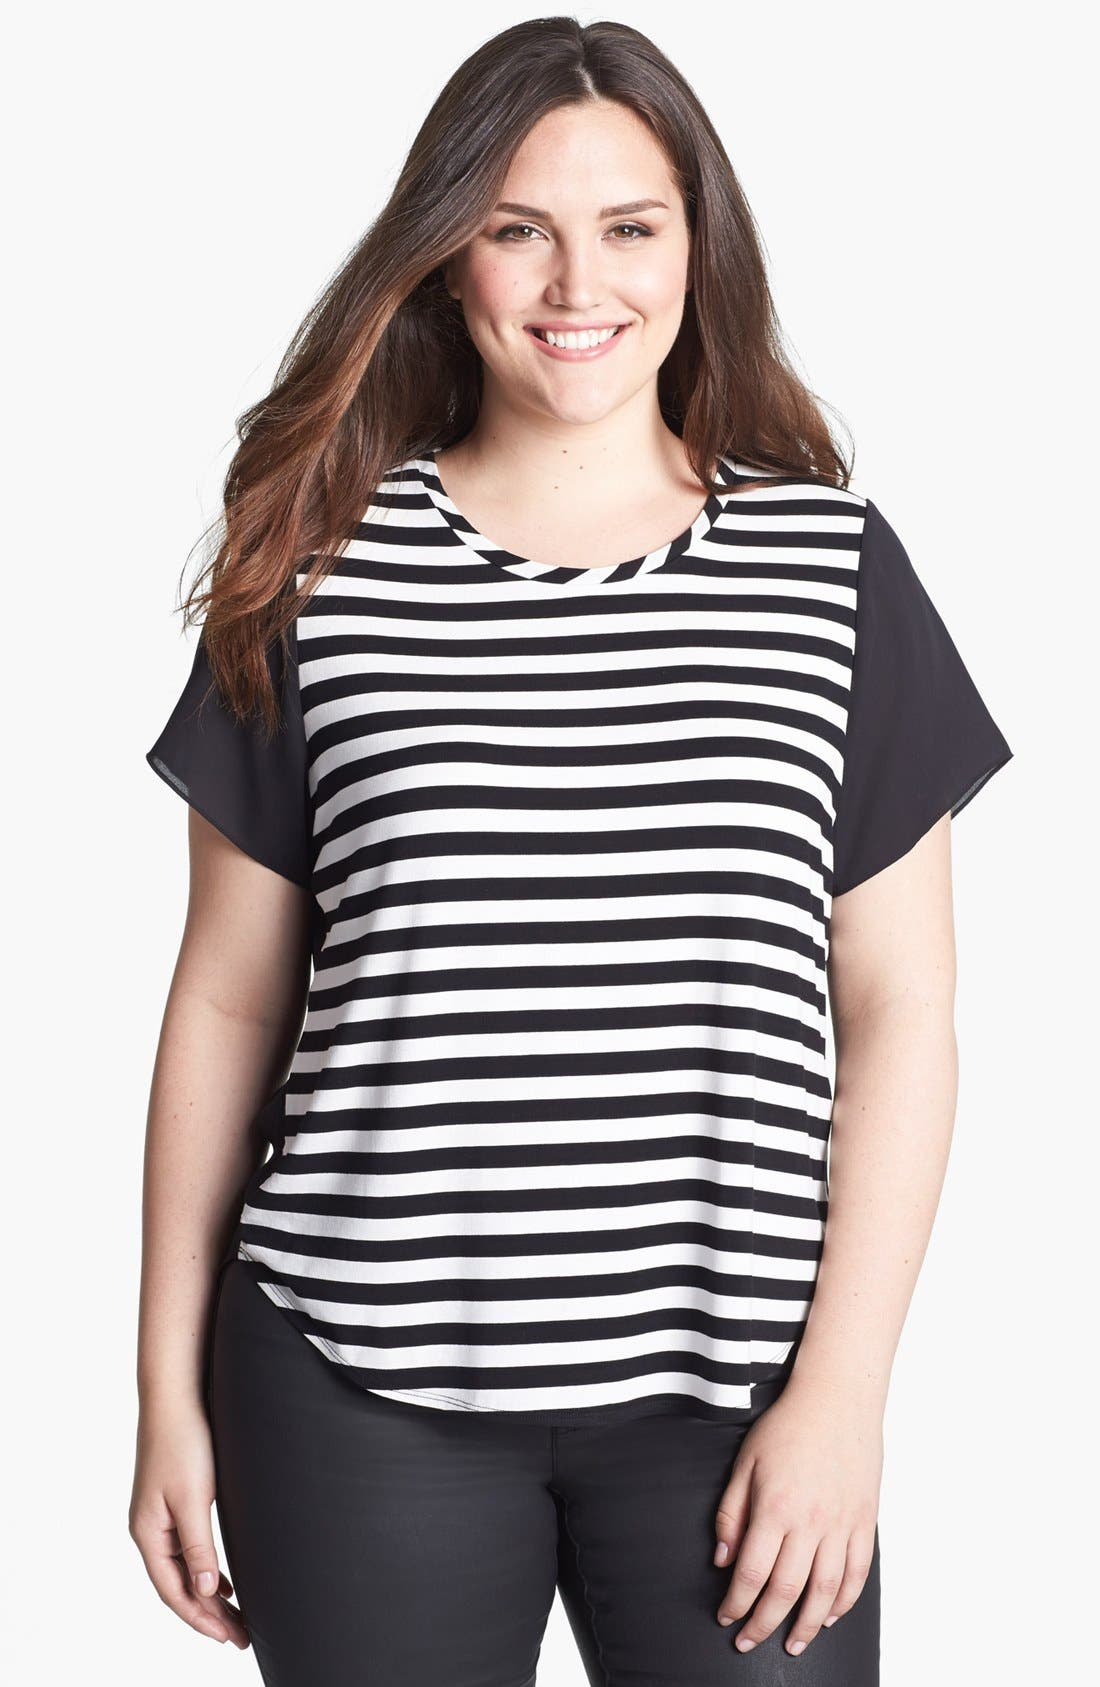 Main Image - Vince Camuto Stripe Mixed Media Tee (Plus Size)